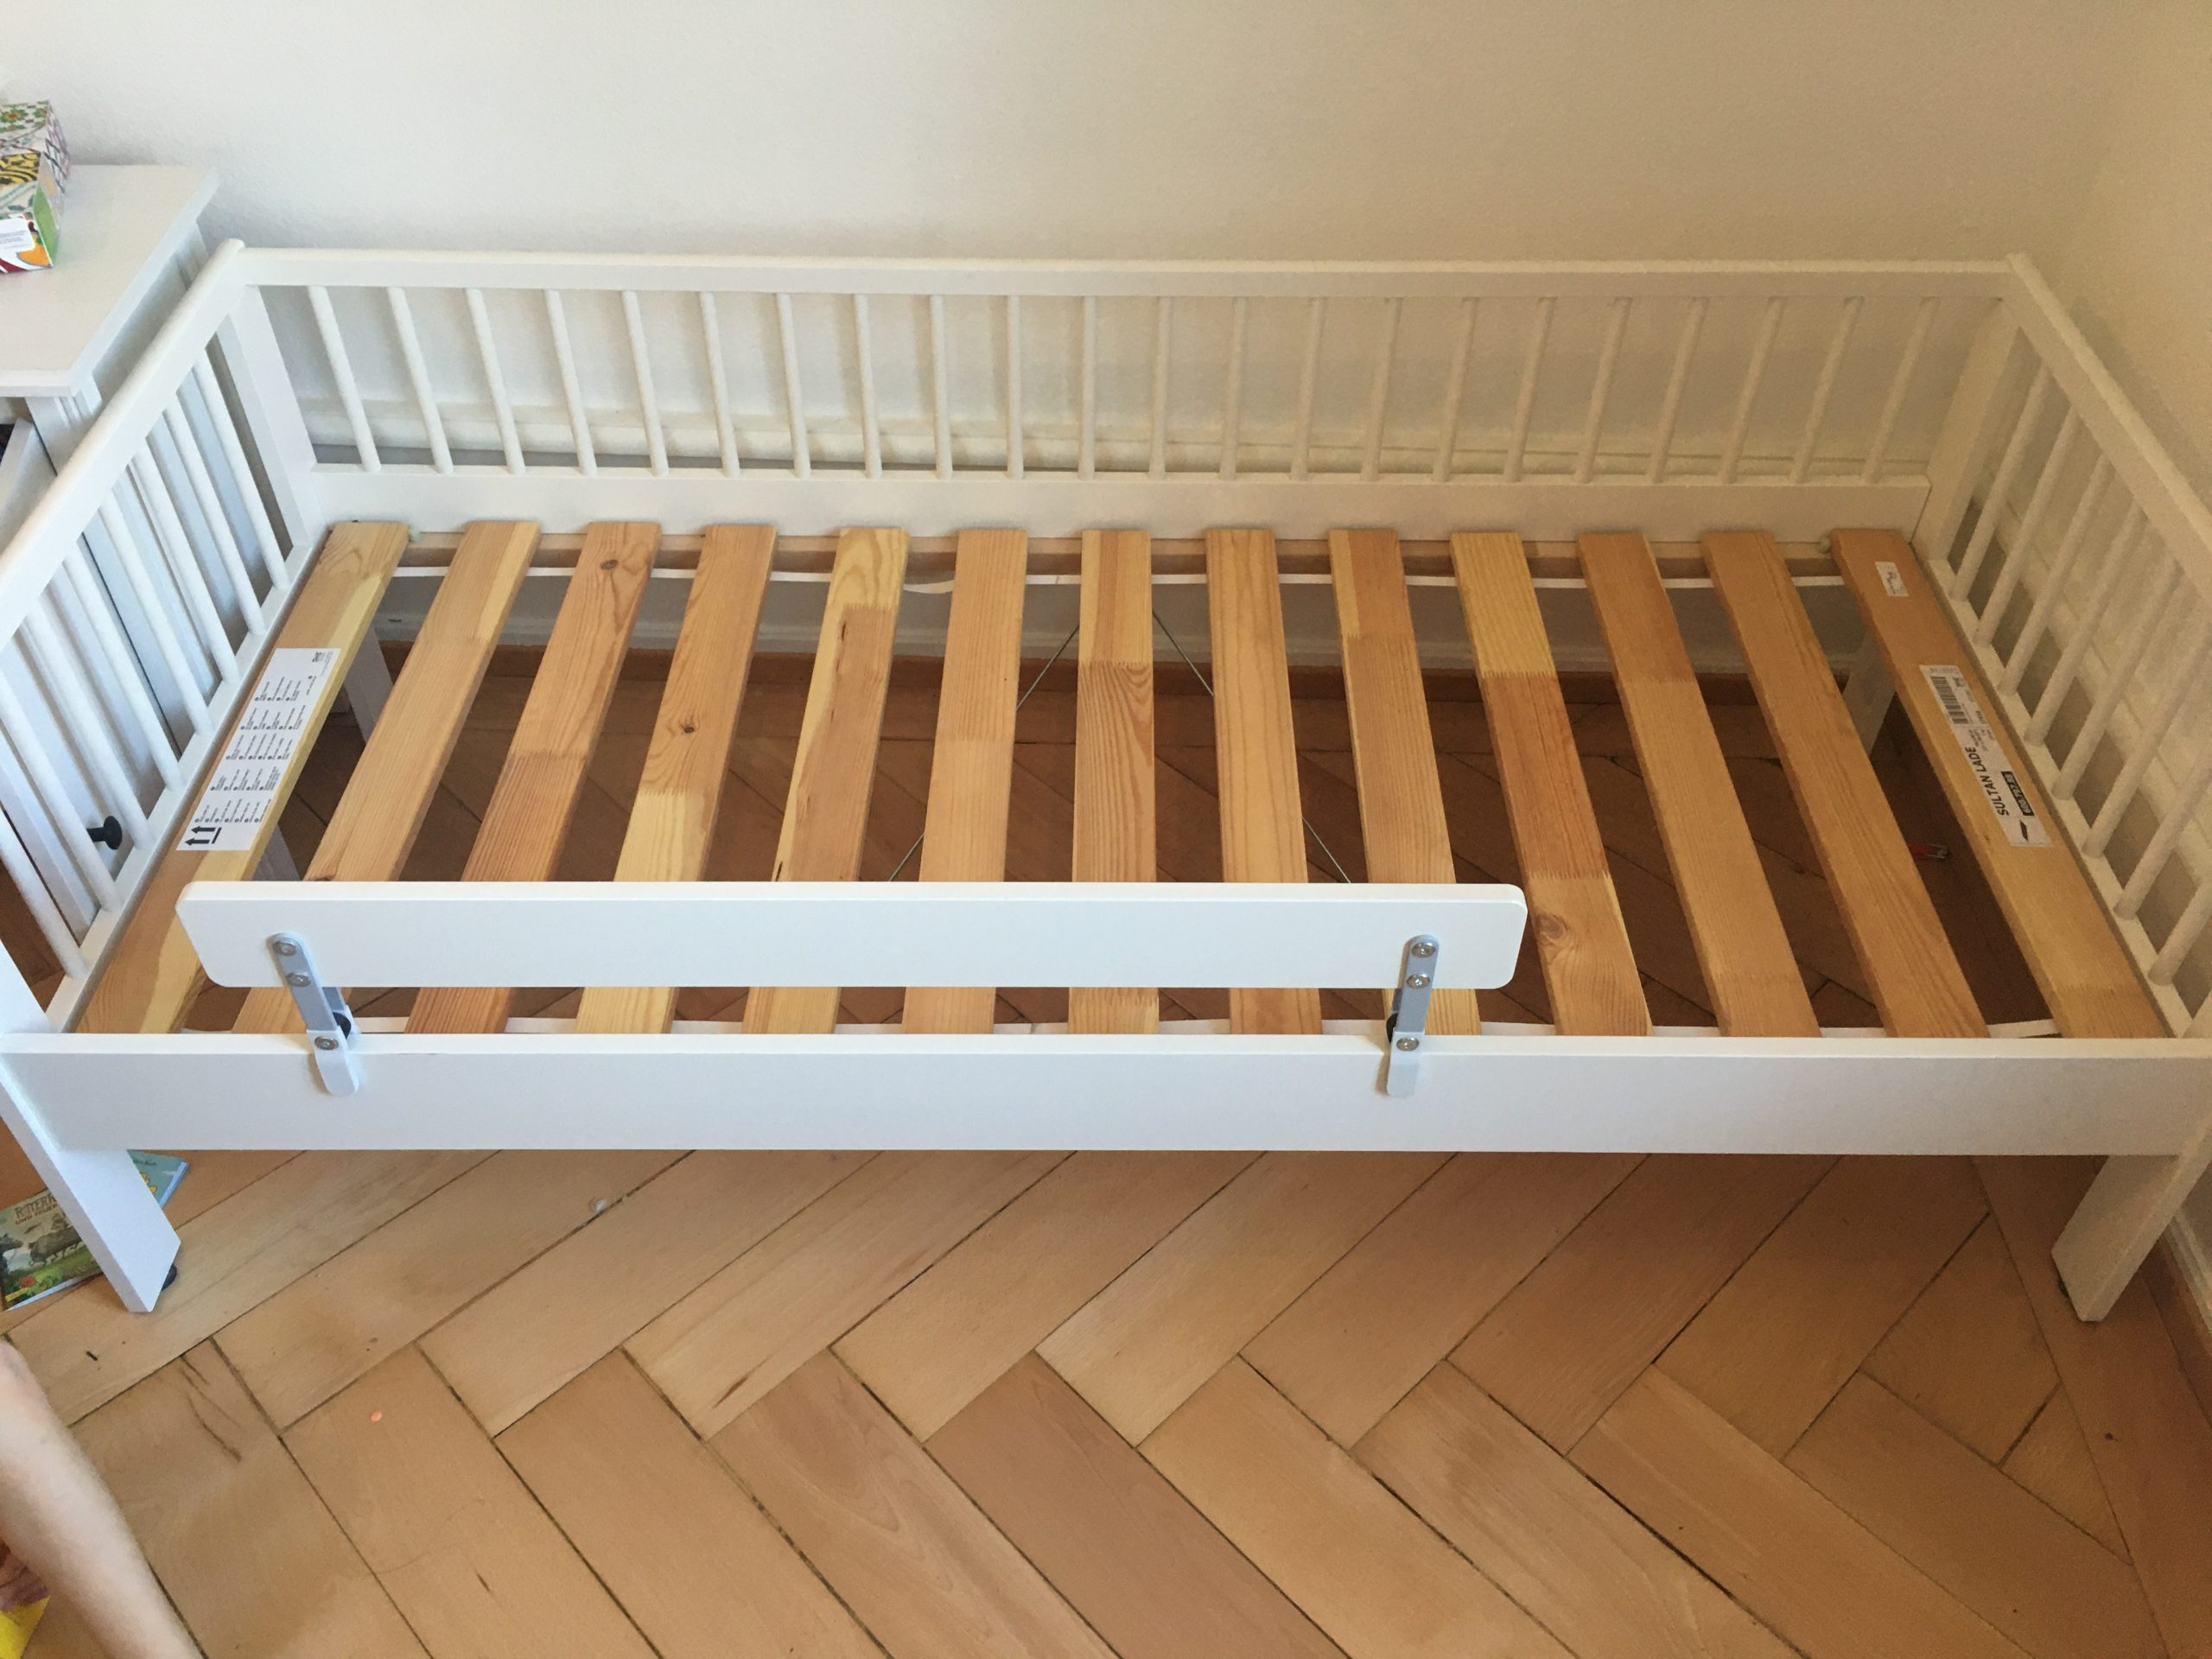 Full Size of Ikea Bett Kinder 40chf Universitt Basel Krankenhaus Graues Amerikanisches Chesterfield Hasena Kleinkind Betten 200x220 Mit Aufbewahrung 200x180 220 X 200 Wohnzimmer Ikea Bett Kinder